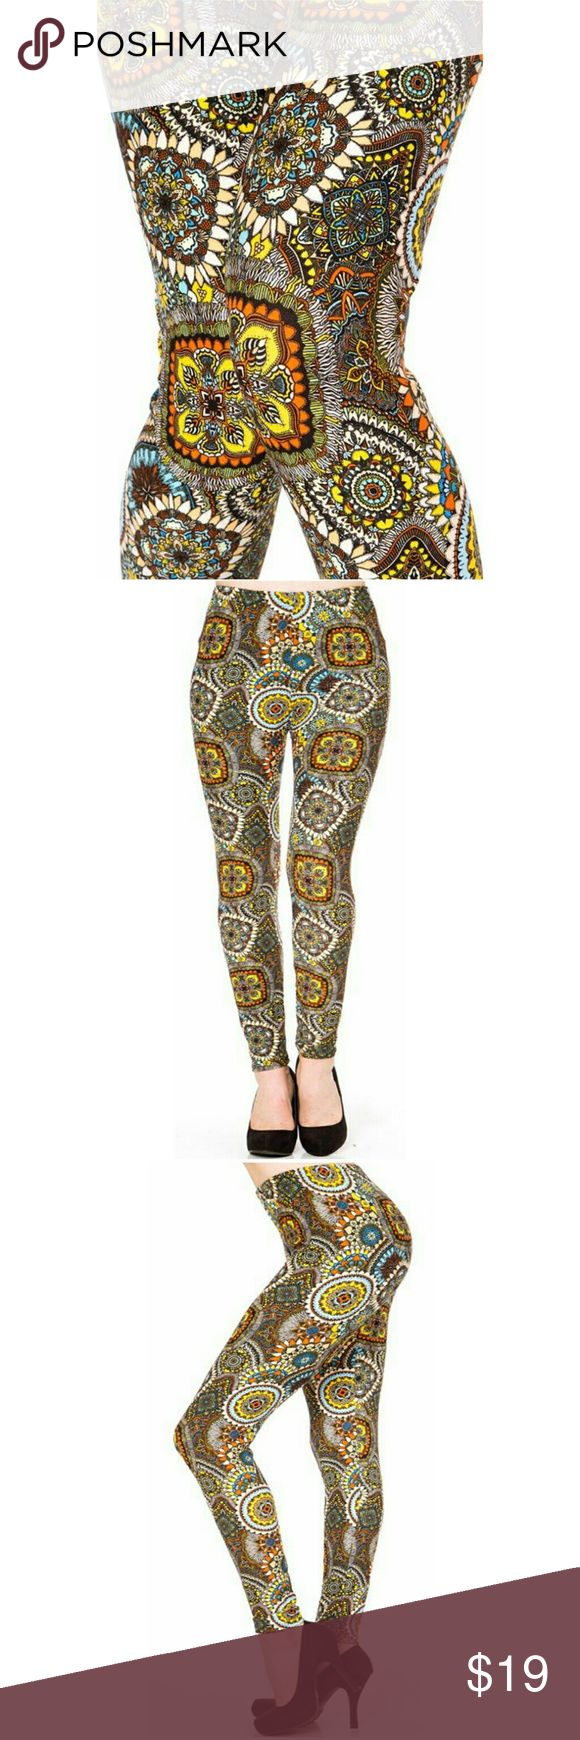 "(Plus) Curvy Tribal Print Leggings Peachskin print full leggings. Tribal mustard yellow and orange  abstract  print. Highwaisted with 1"" Wide elastic waistband. Very soft. Great to wear dressed up with heels or casual with tennies. New in package.(N216)  L 37"" I 27"" R 10. Fits XL to 2X (14-22) comfortably. One size BohoBeauRoseBoutique Pants Leggings"